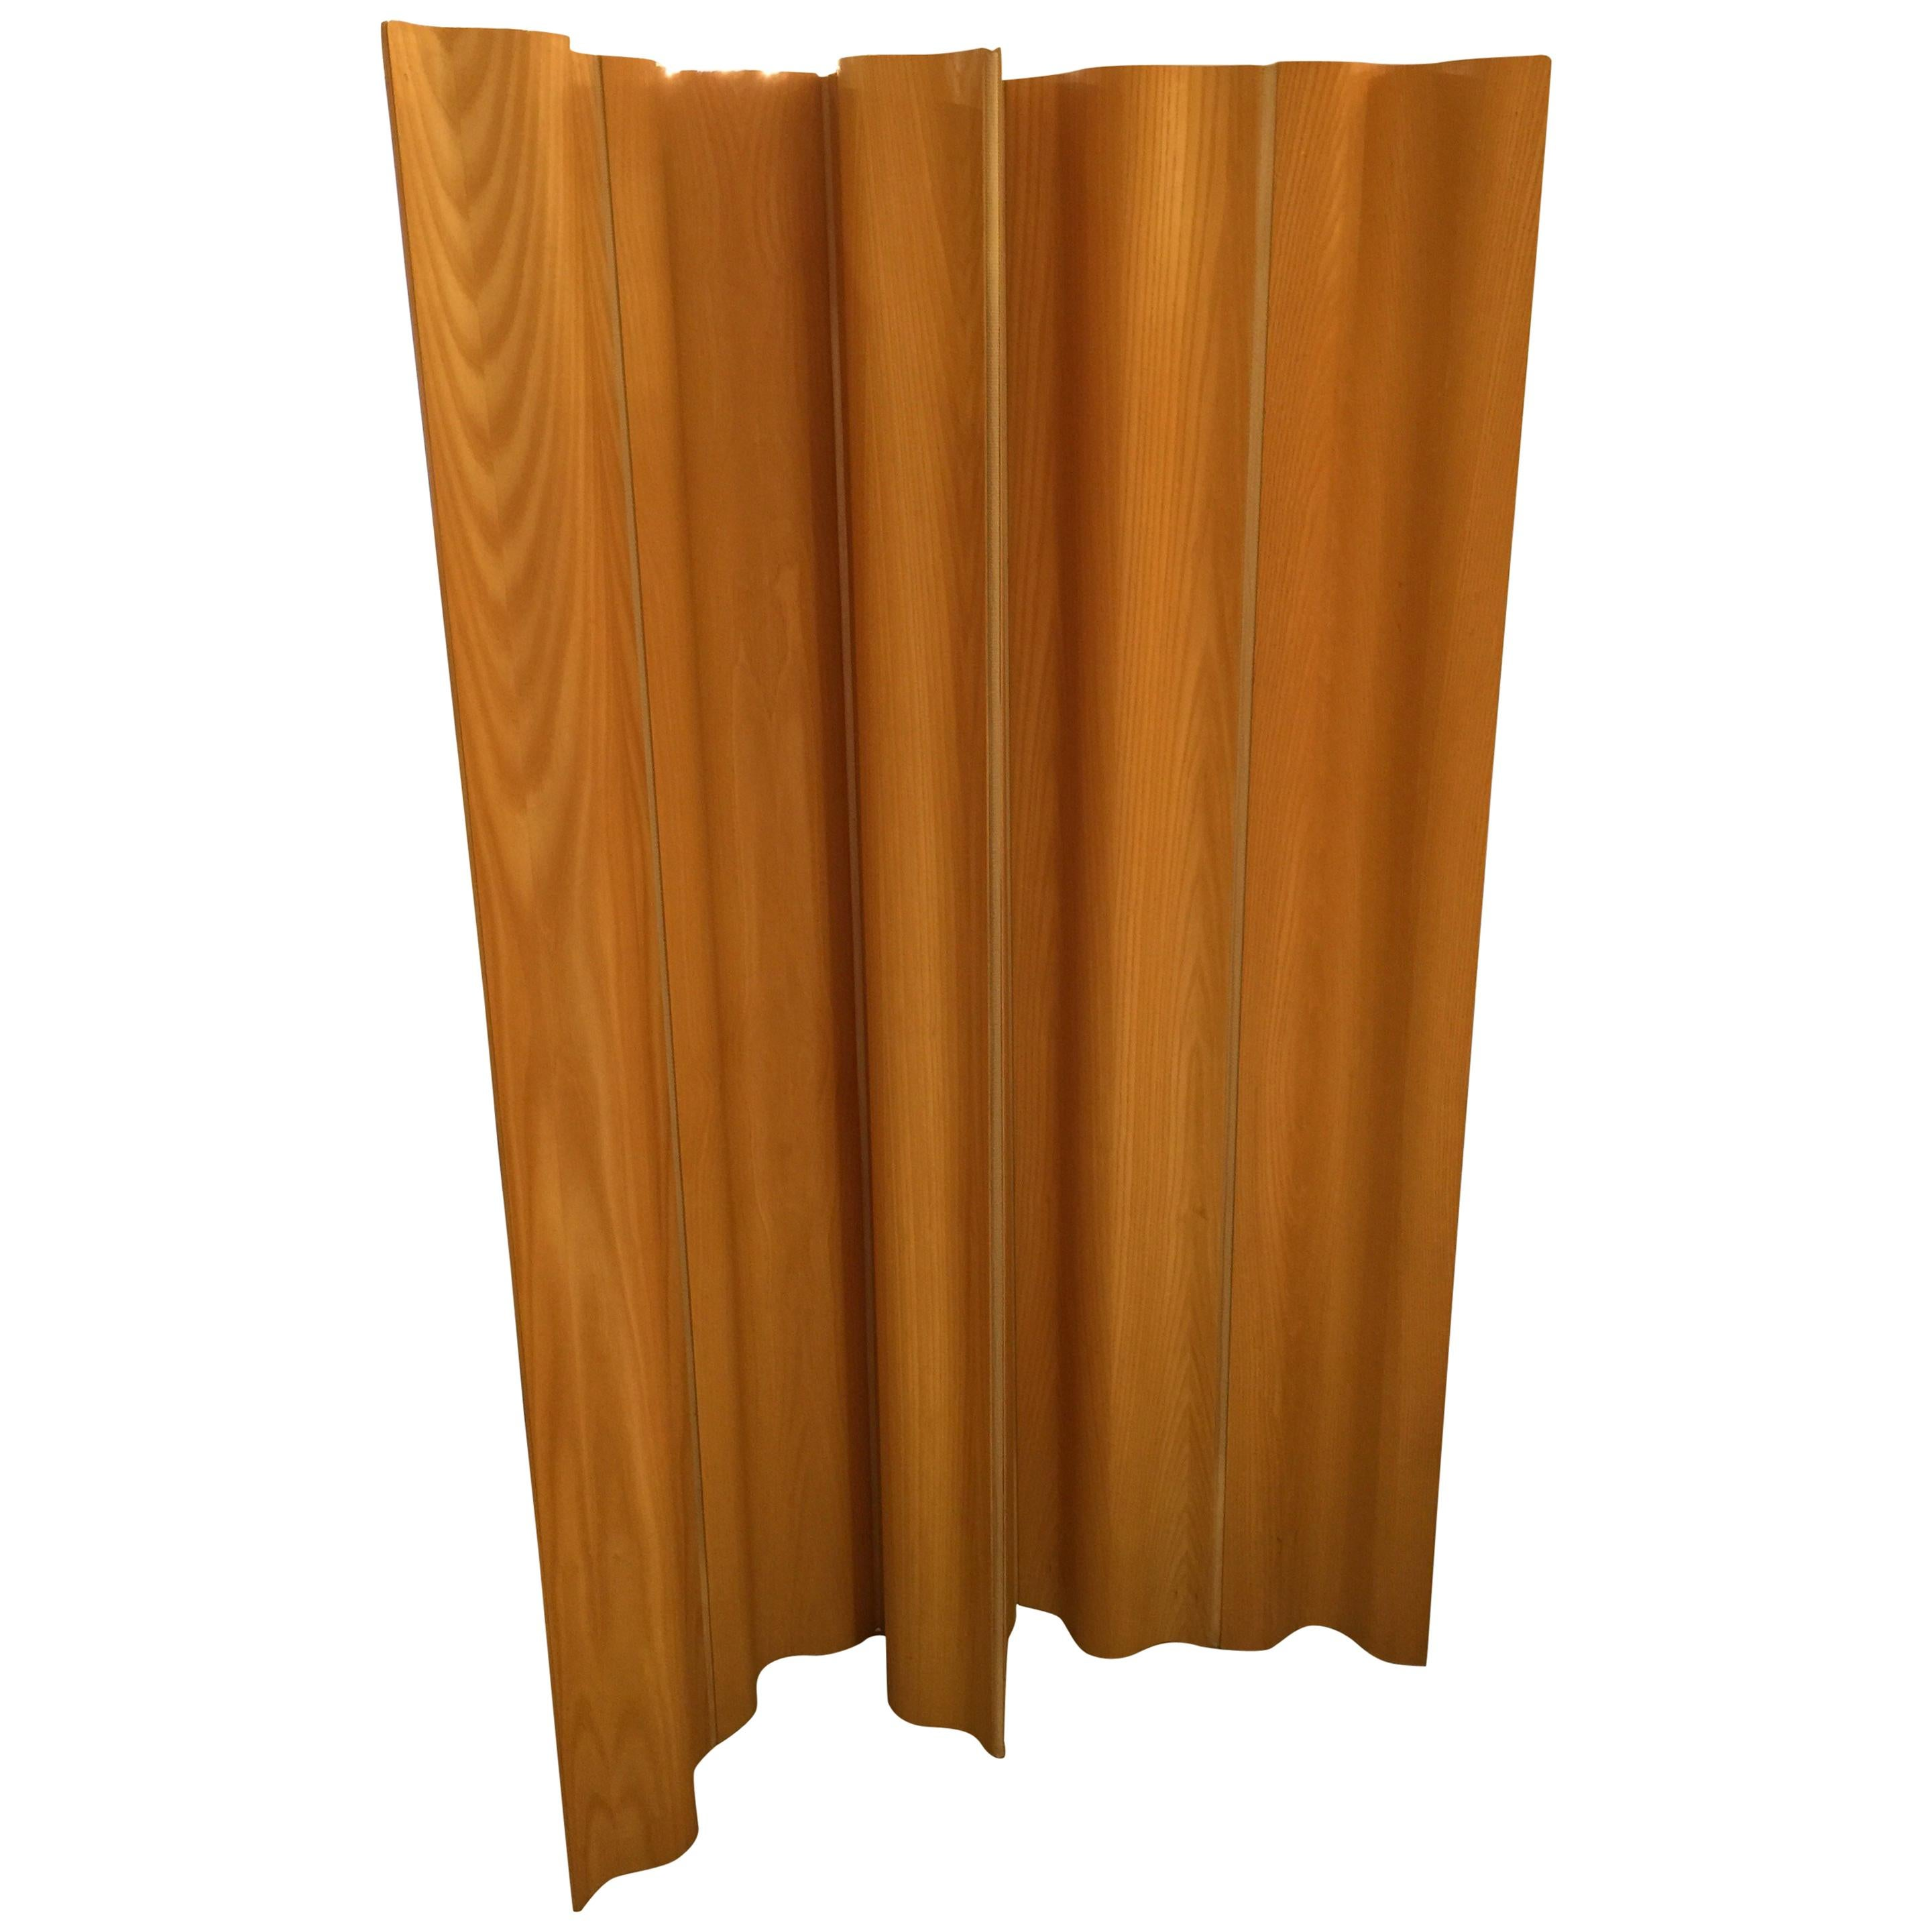 Vintage Plywood Screen by Charles & Ray Eames